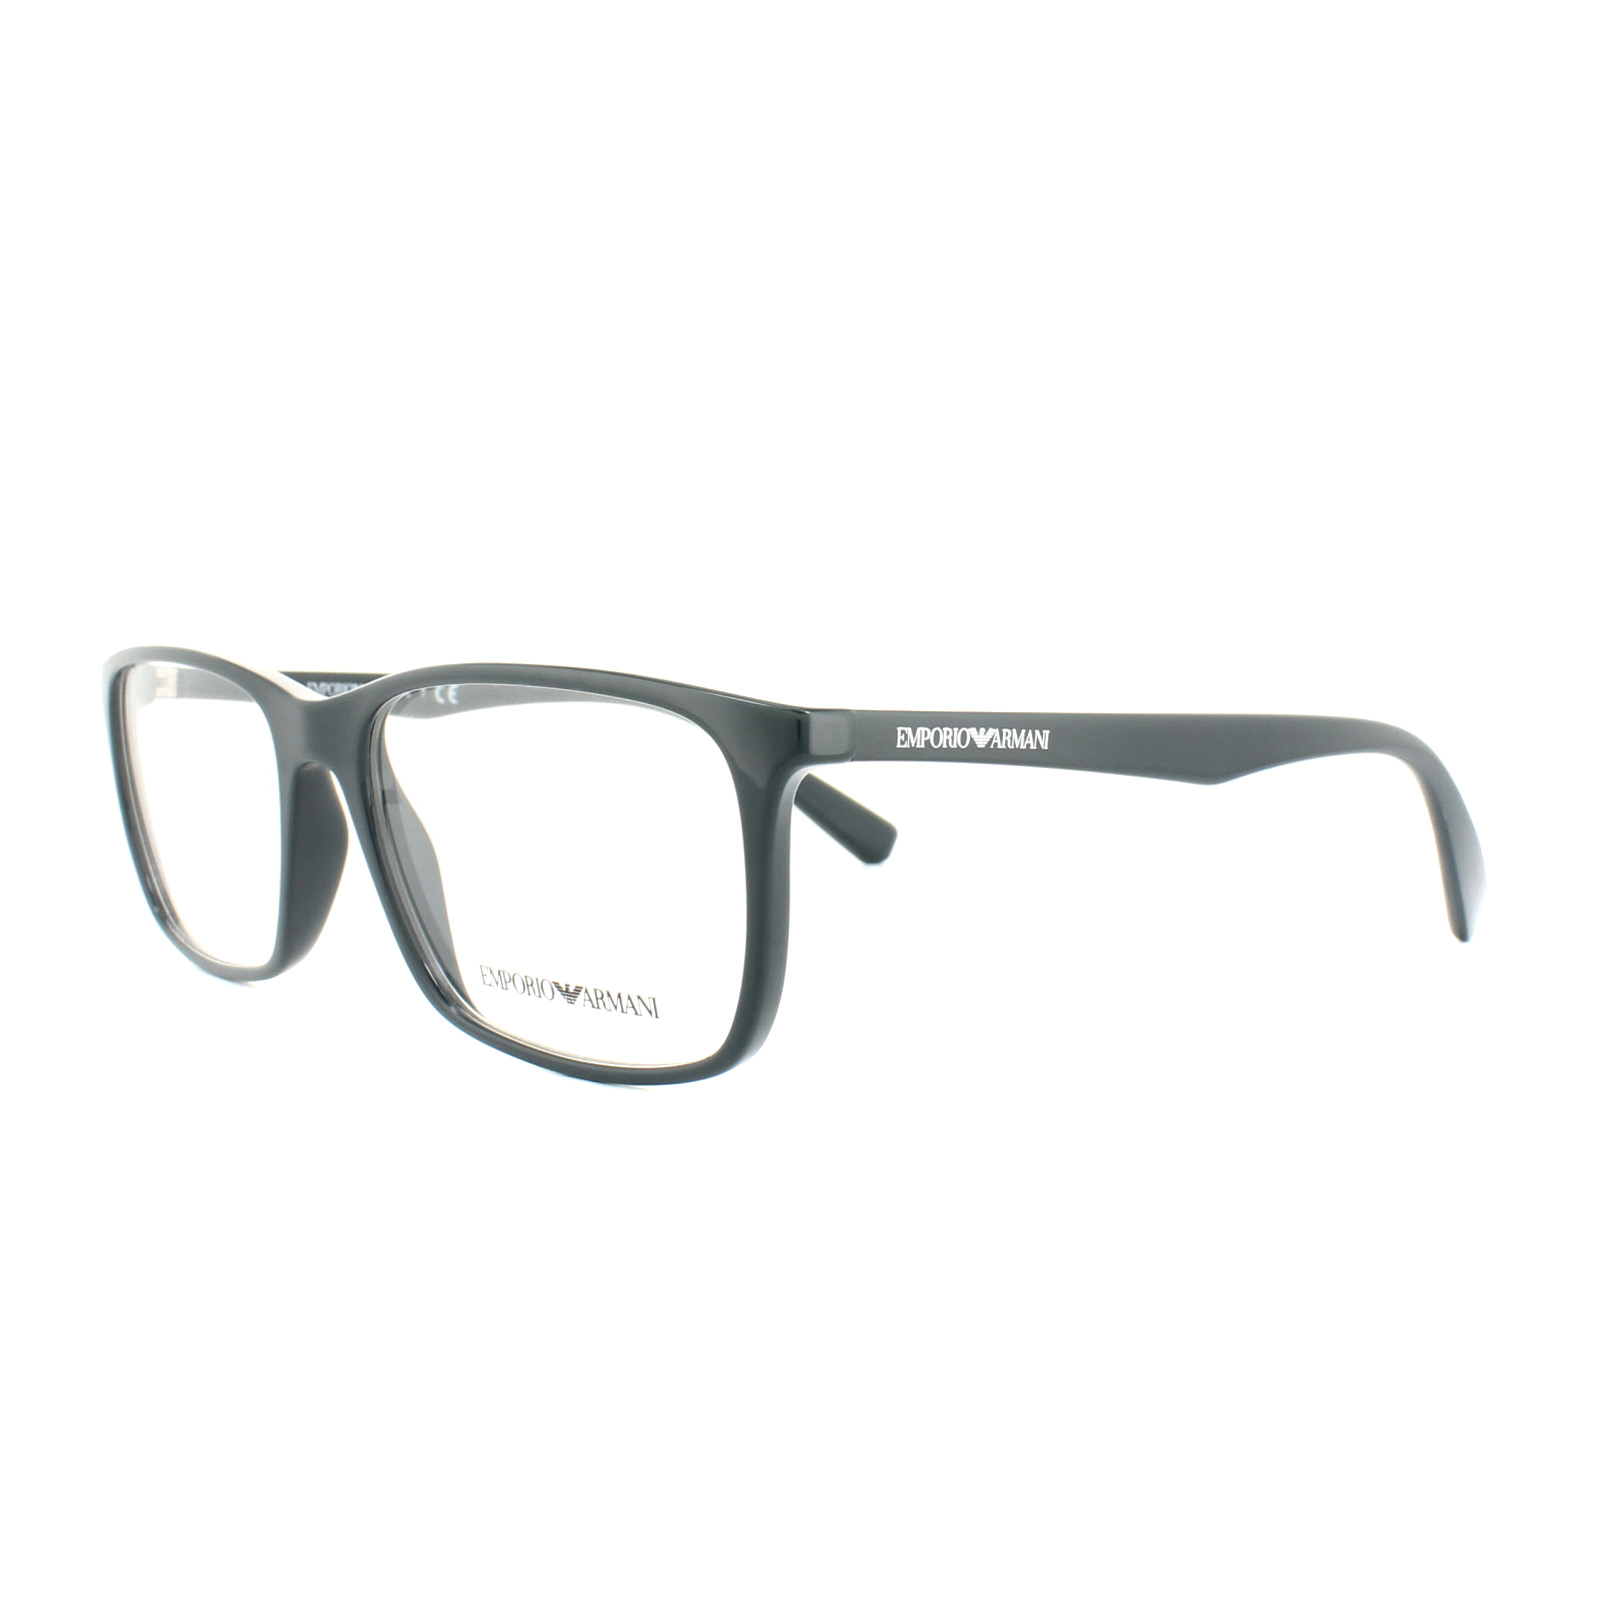 aa29982dc44 Sentinel Emporio Armani Glasses Frames EA 3109 5602 Dark Blue Used Effect  Womens 52mm